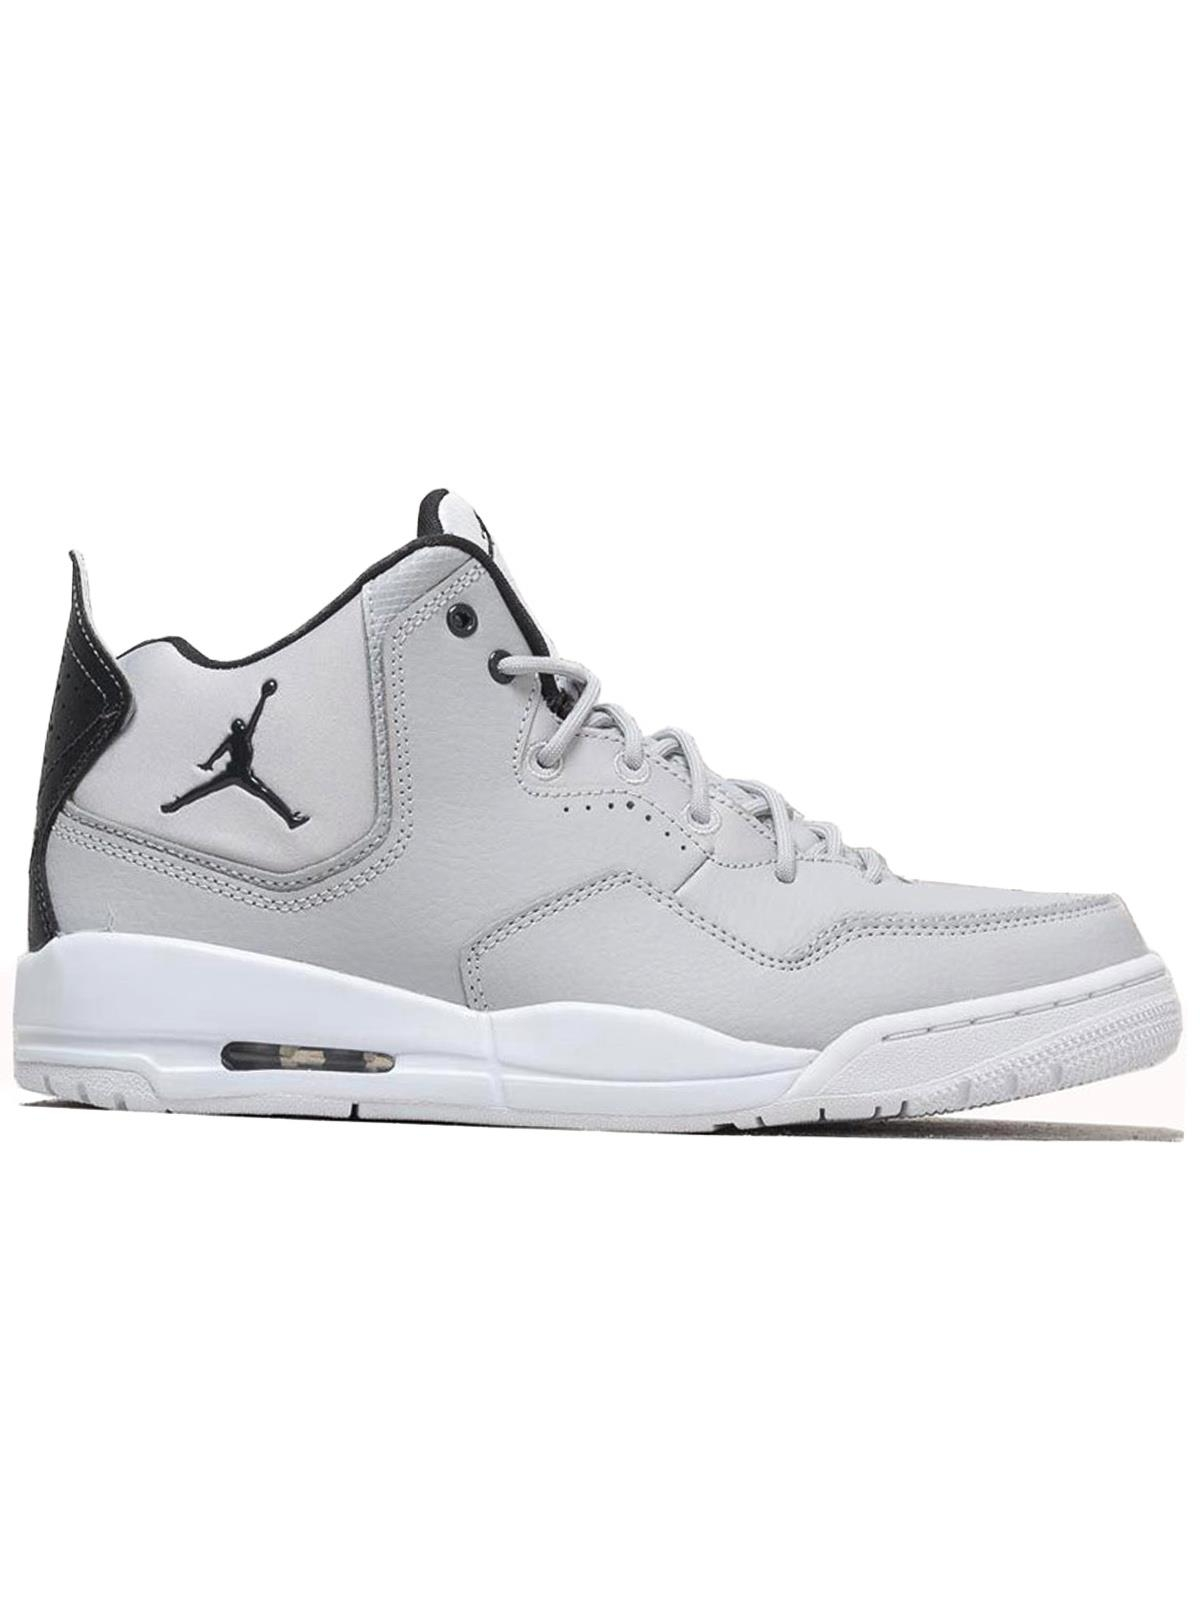 SNEAKERS JORDAN COURTSIDE 23AR1000-002 GREY FOG/DK SMOKE GREY-WHITE